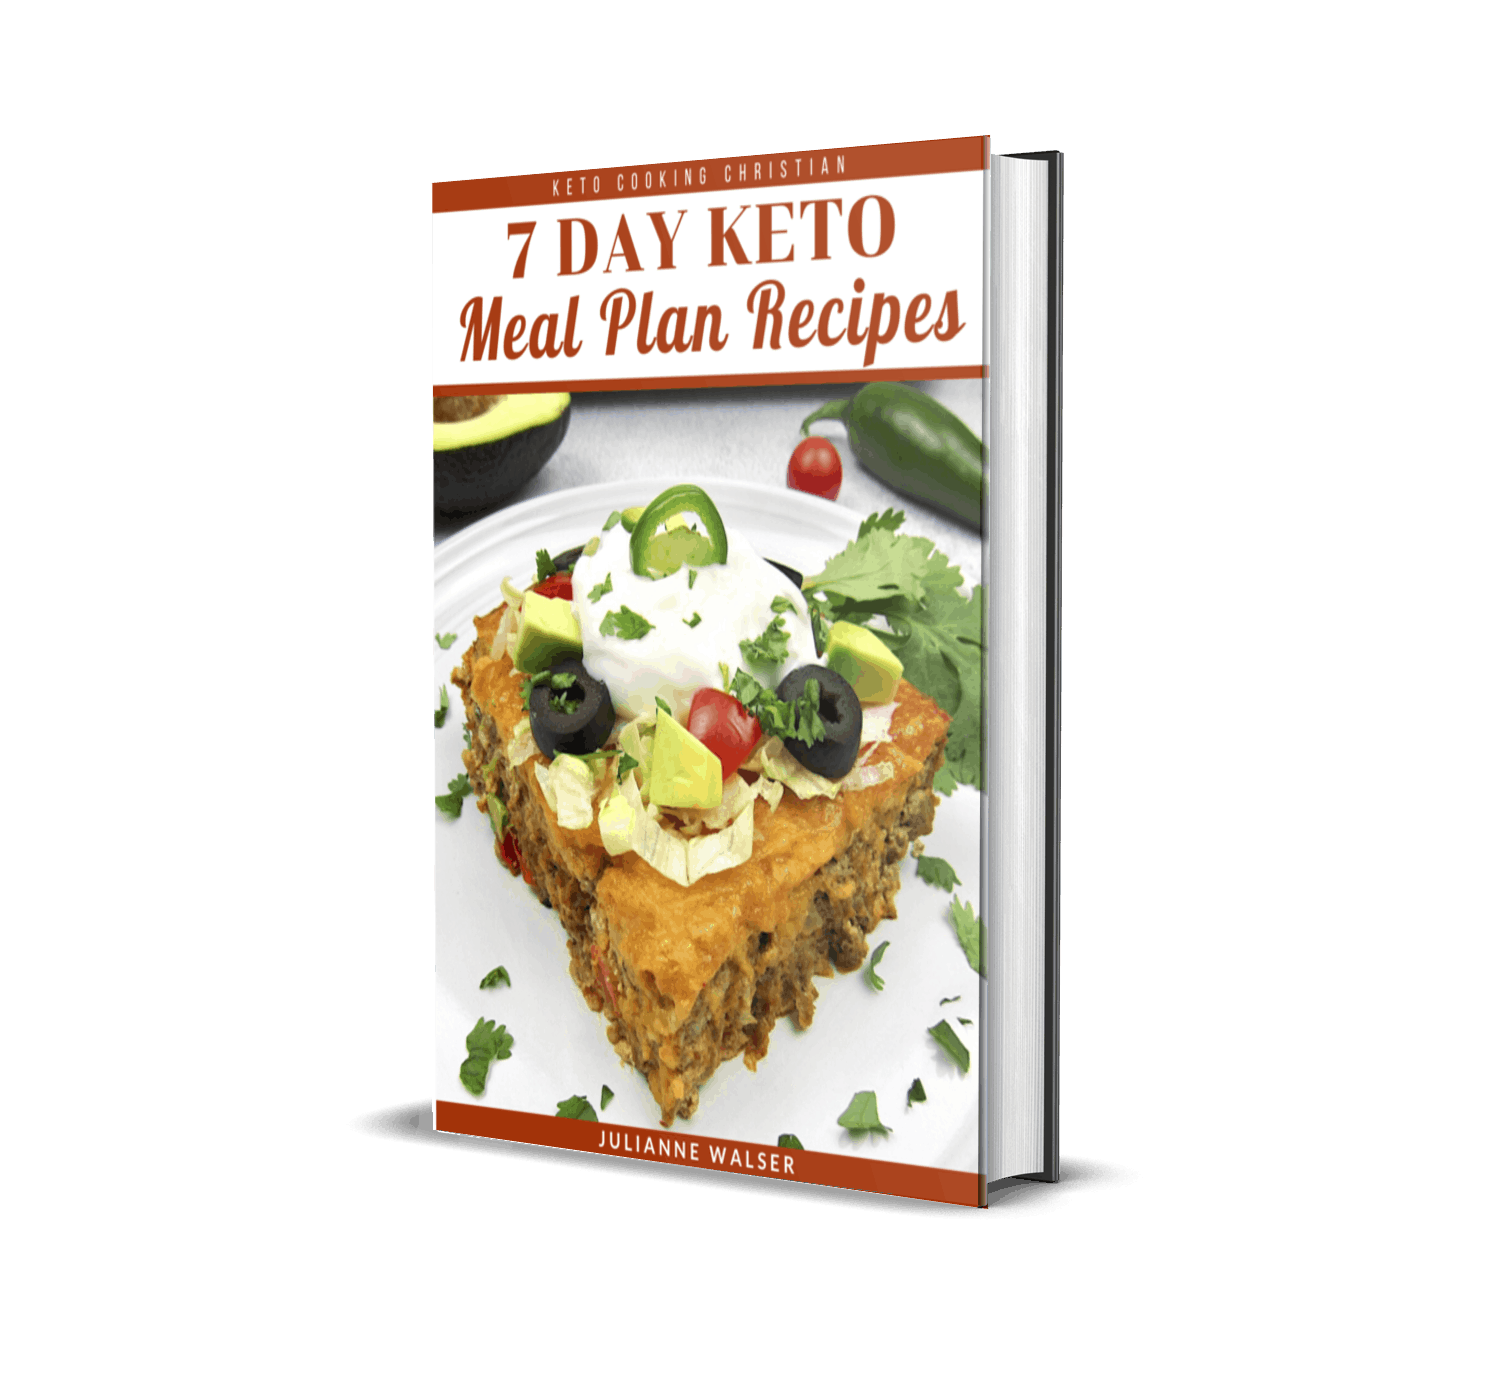 7 Day Keto Meal Plan Recipes eBook 3D Cover